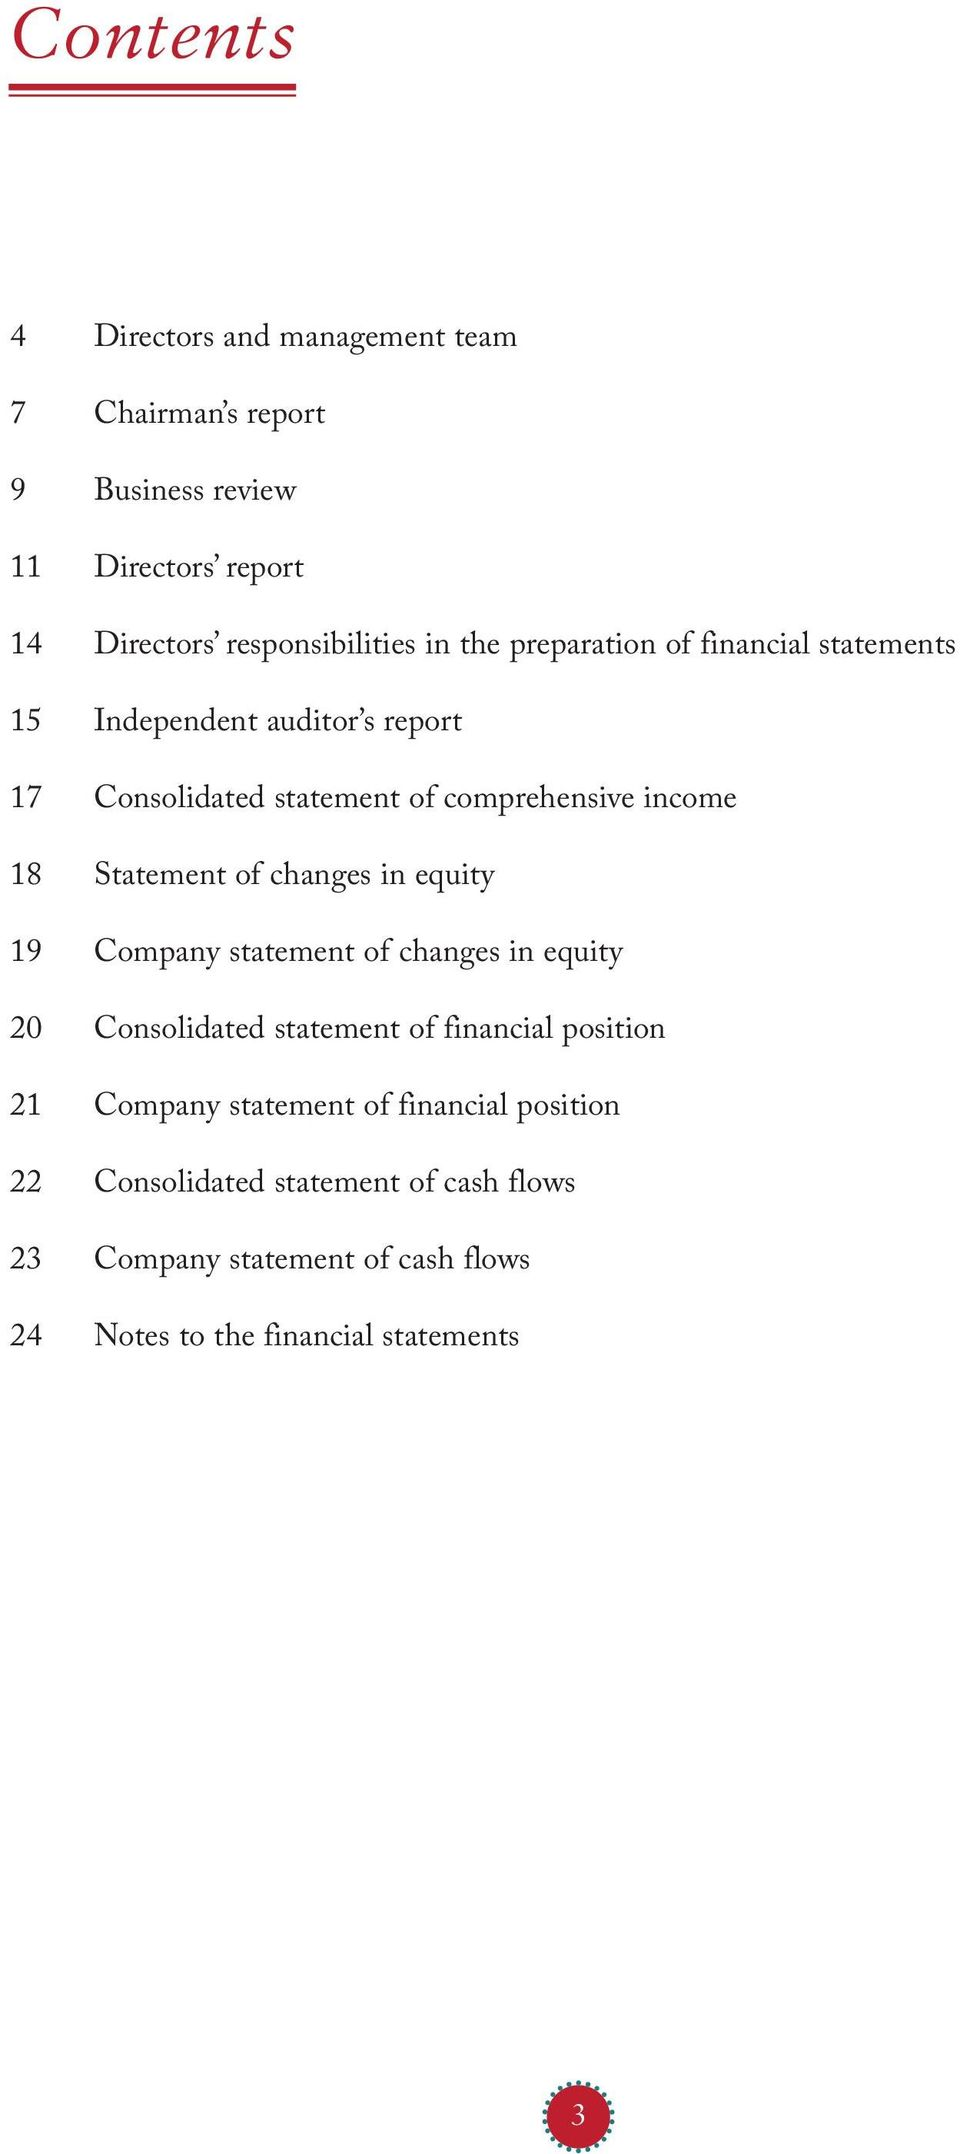 Statement of changes in equity 19 Company statement of changes in equity 20 Consolidated statement of financial position 21 Company